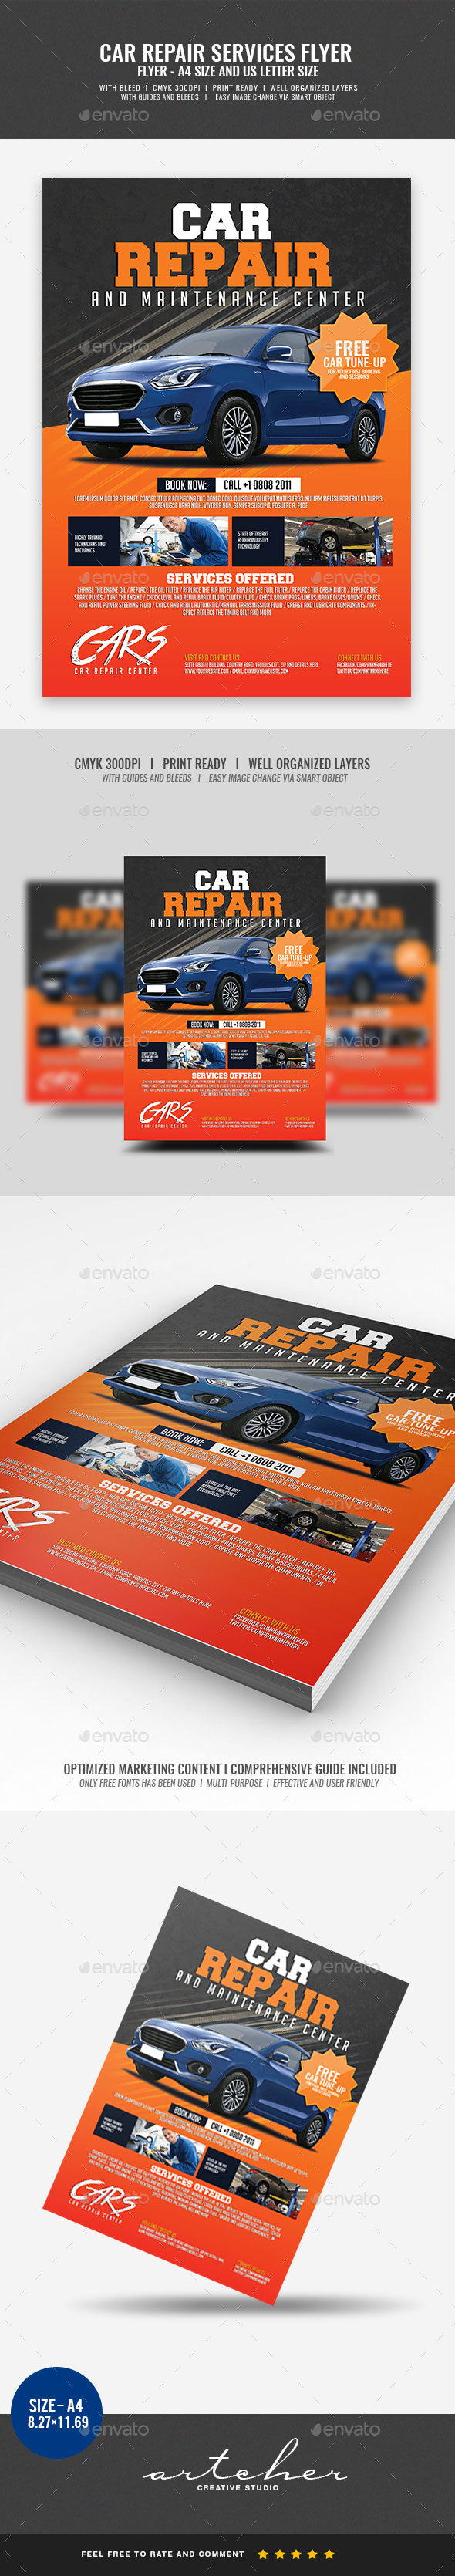 Car Repair Services Flyer - Corporate Flyers